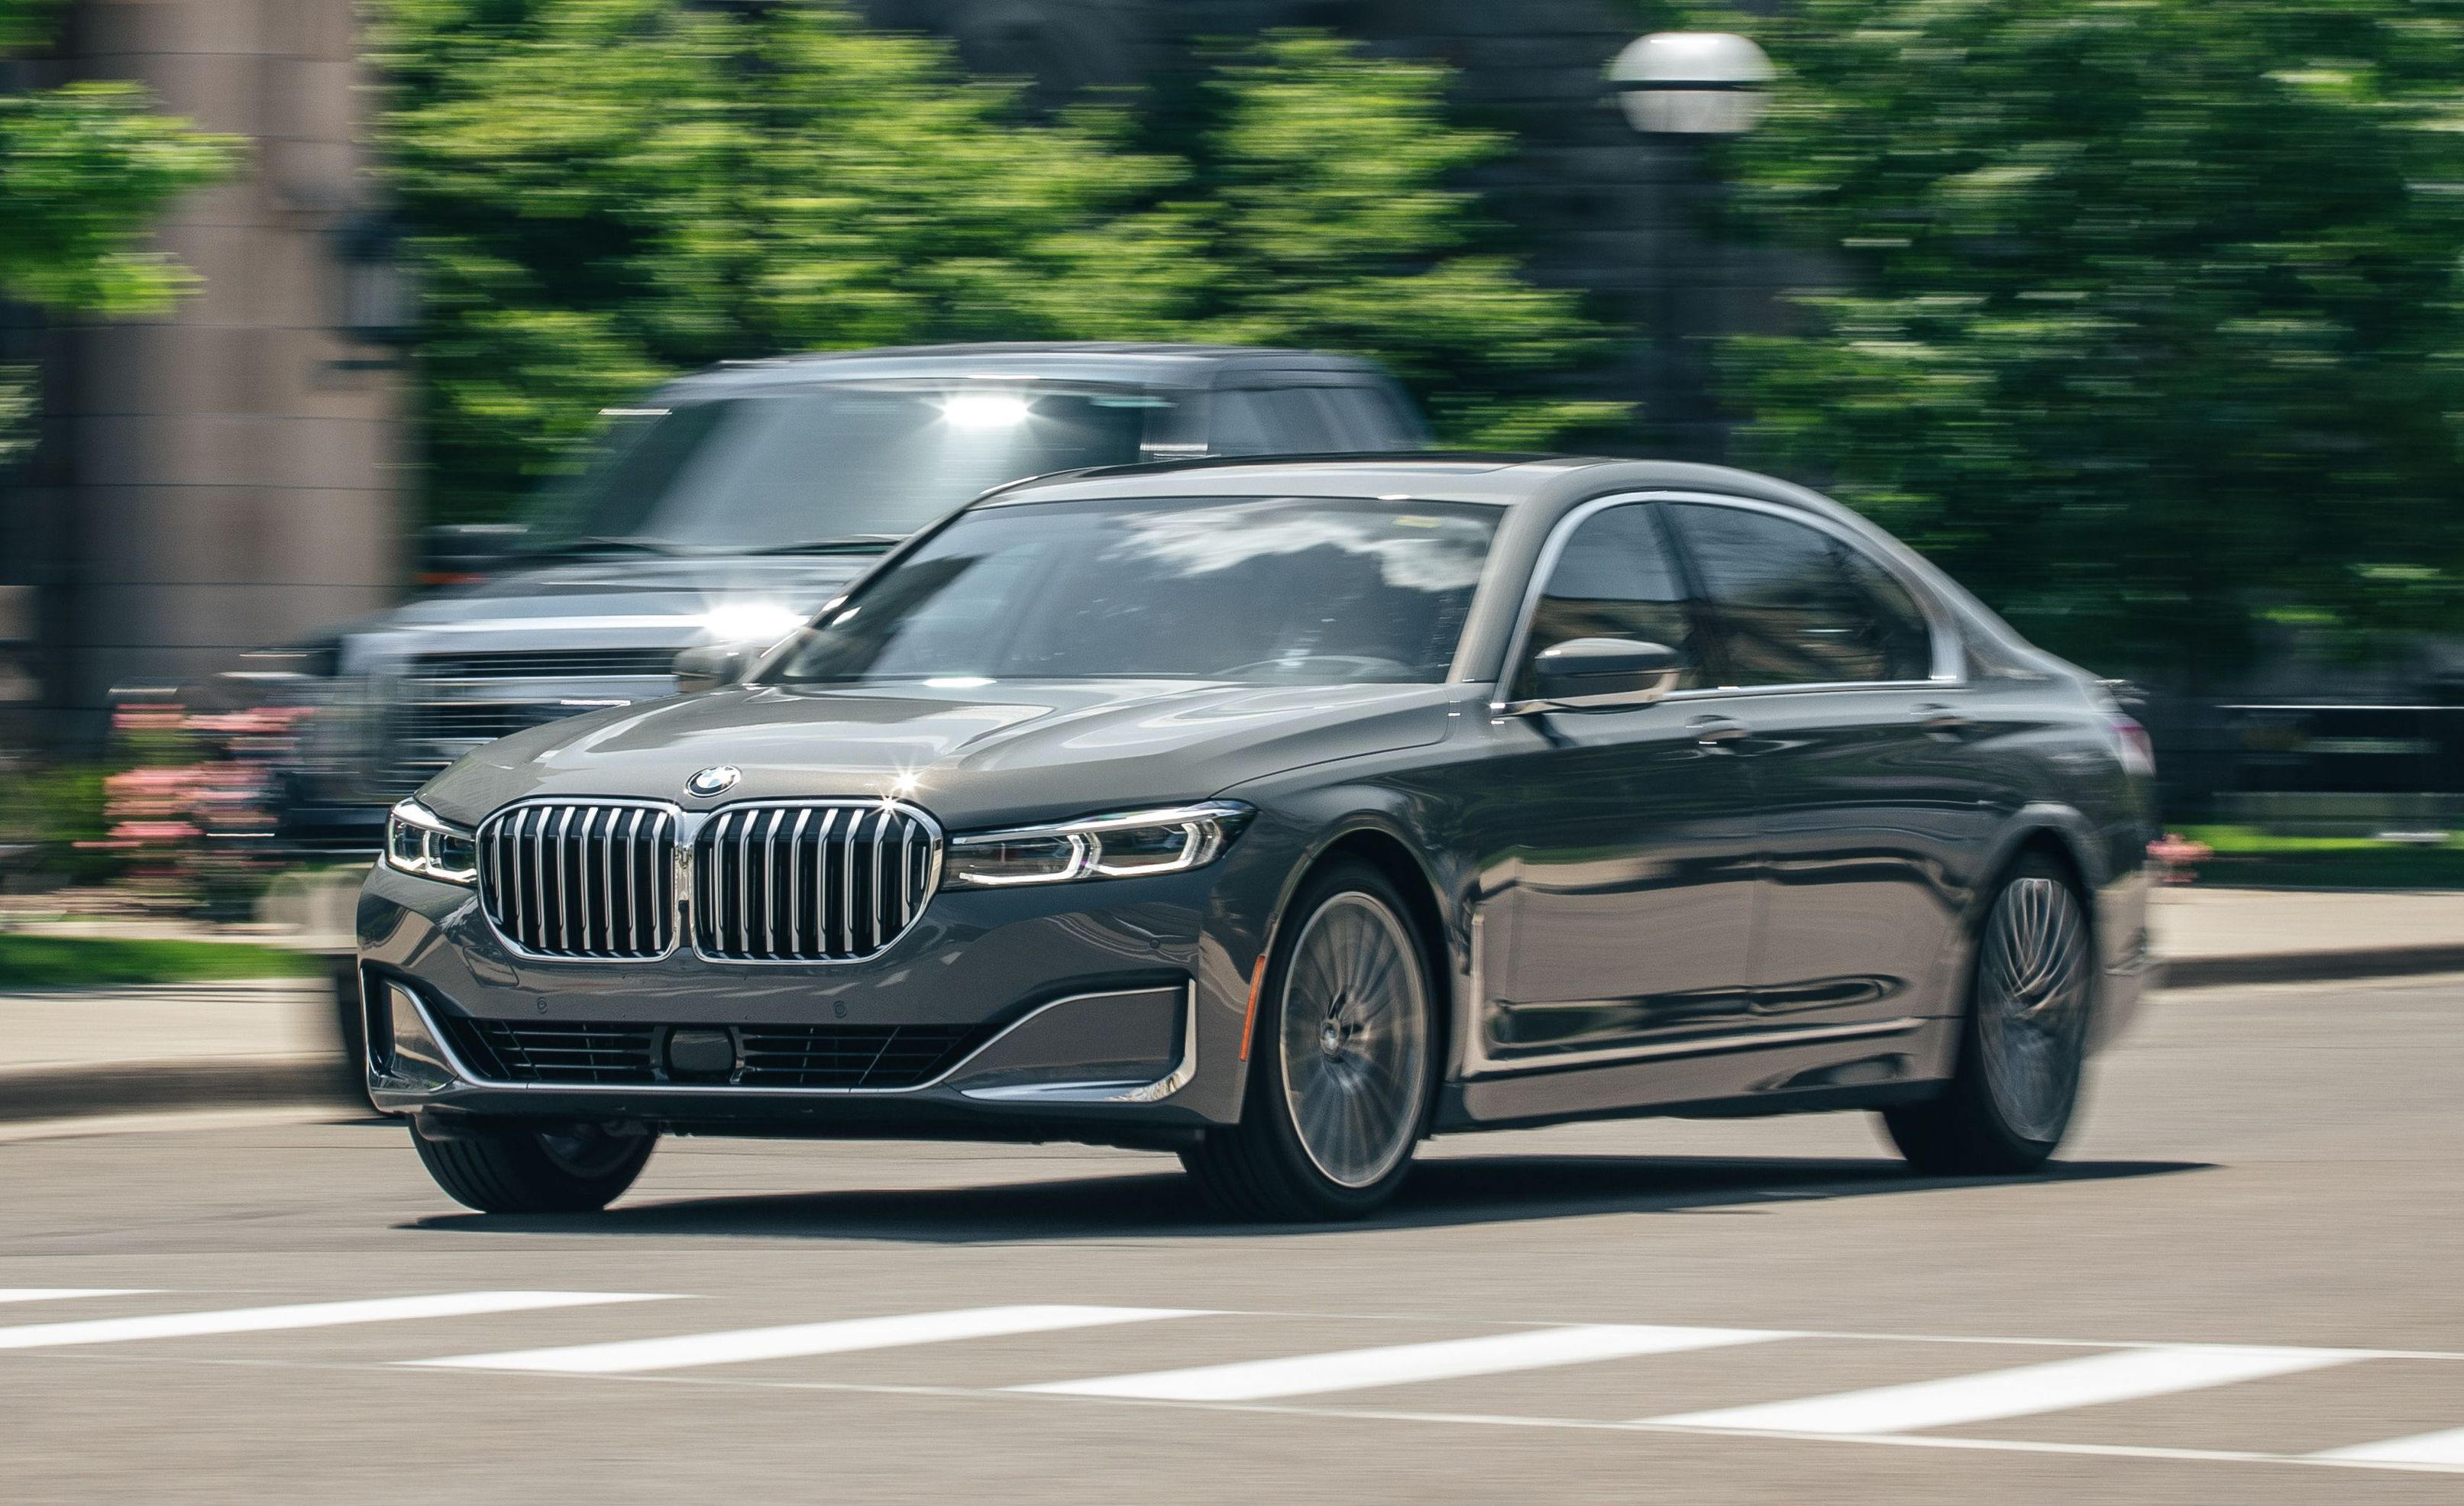 2020 Bmw 7 Series Has Serious Power Behind Its Gaping Grille